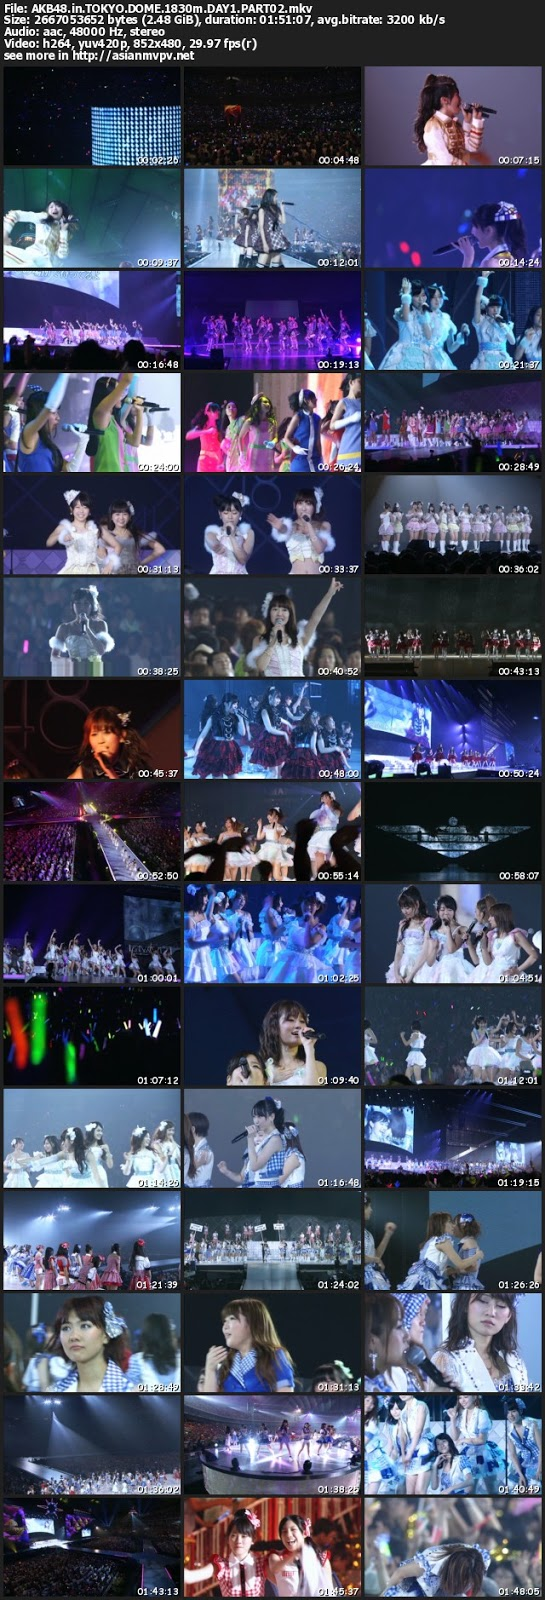 Ss4 japan dvd tokyo dome - Theatre of tragedy live dvd